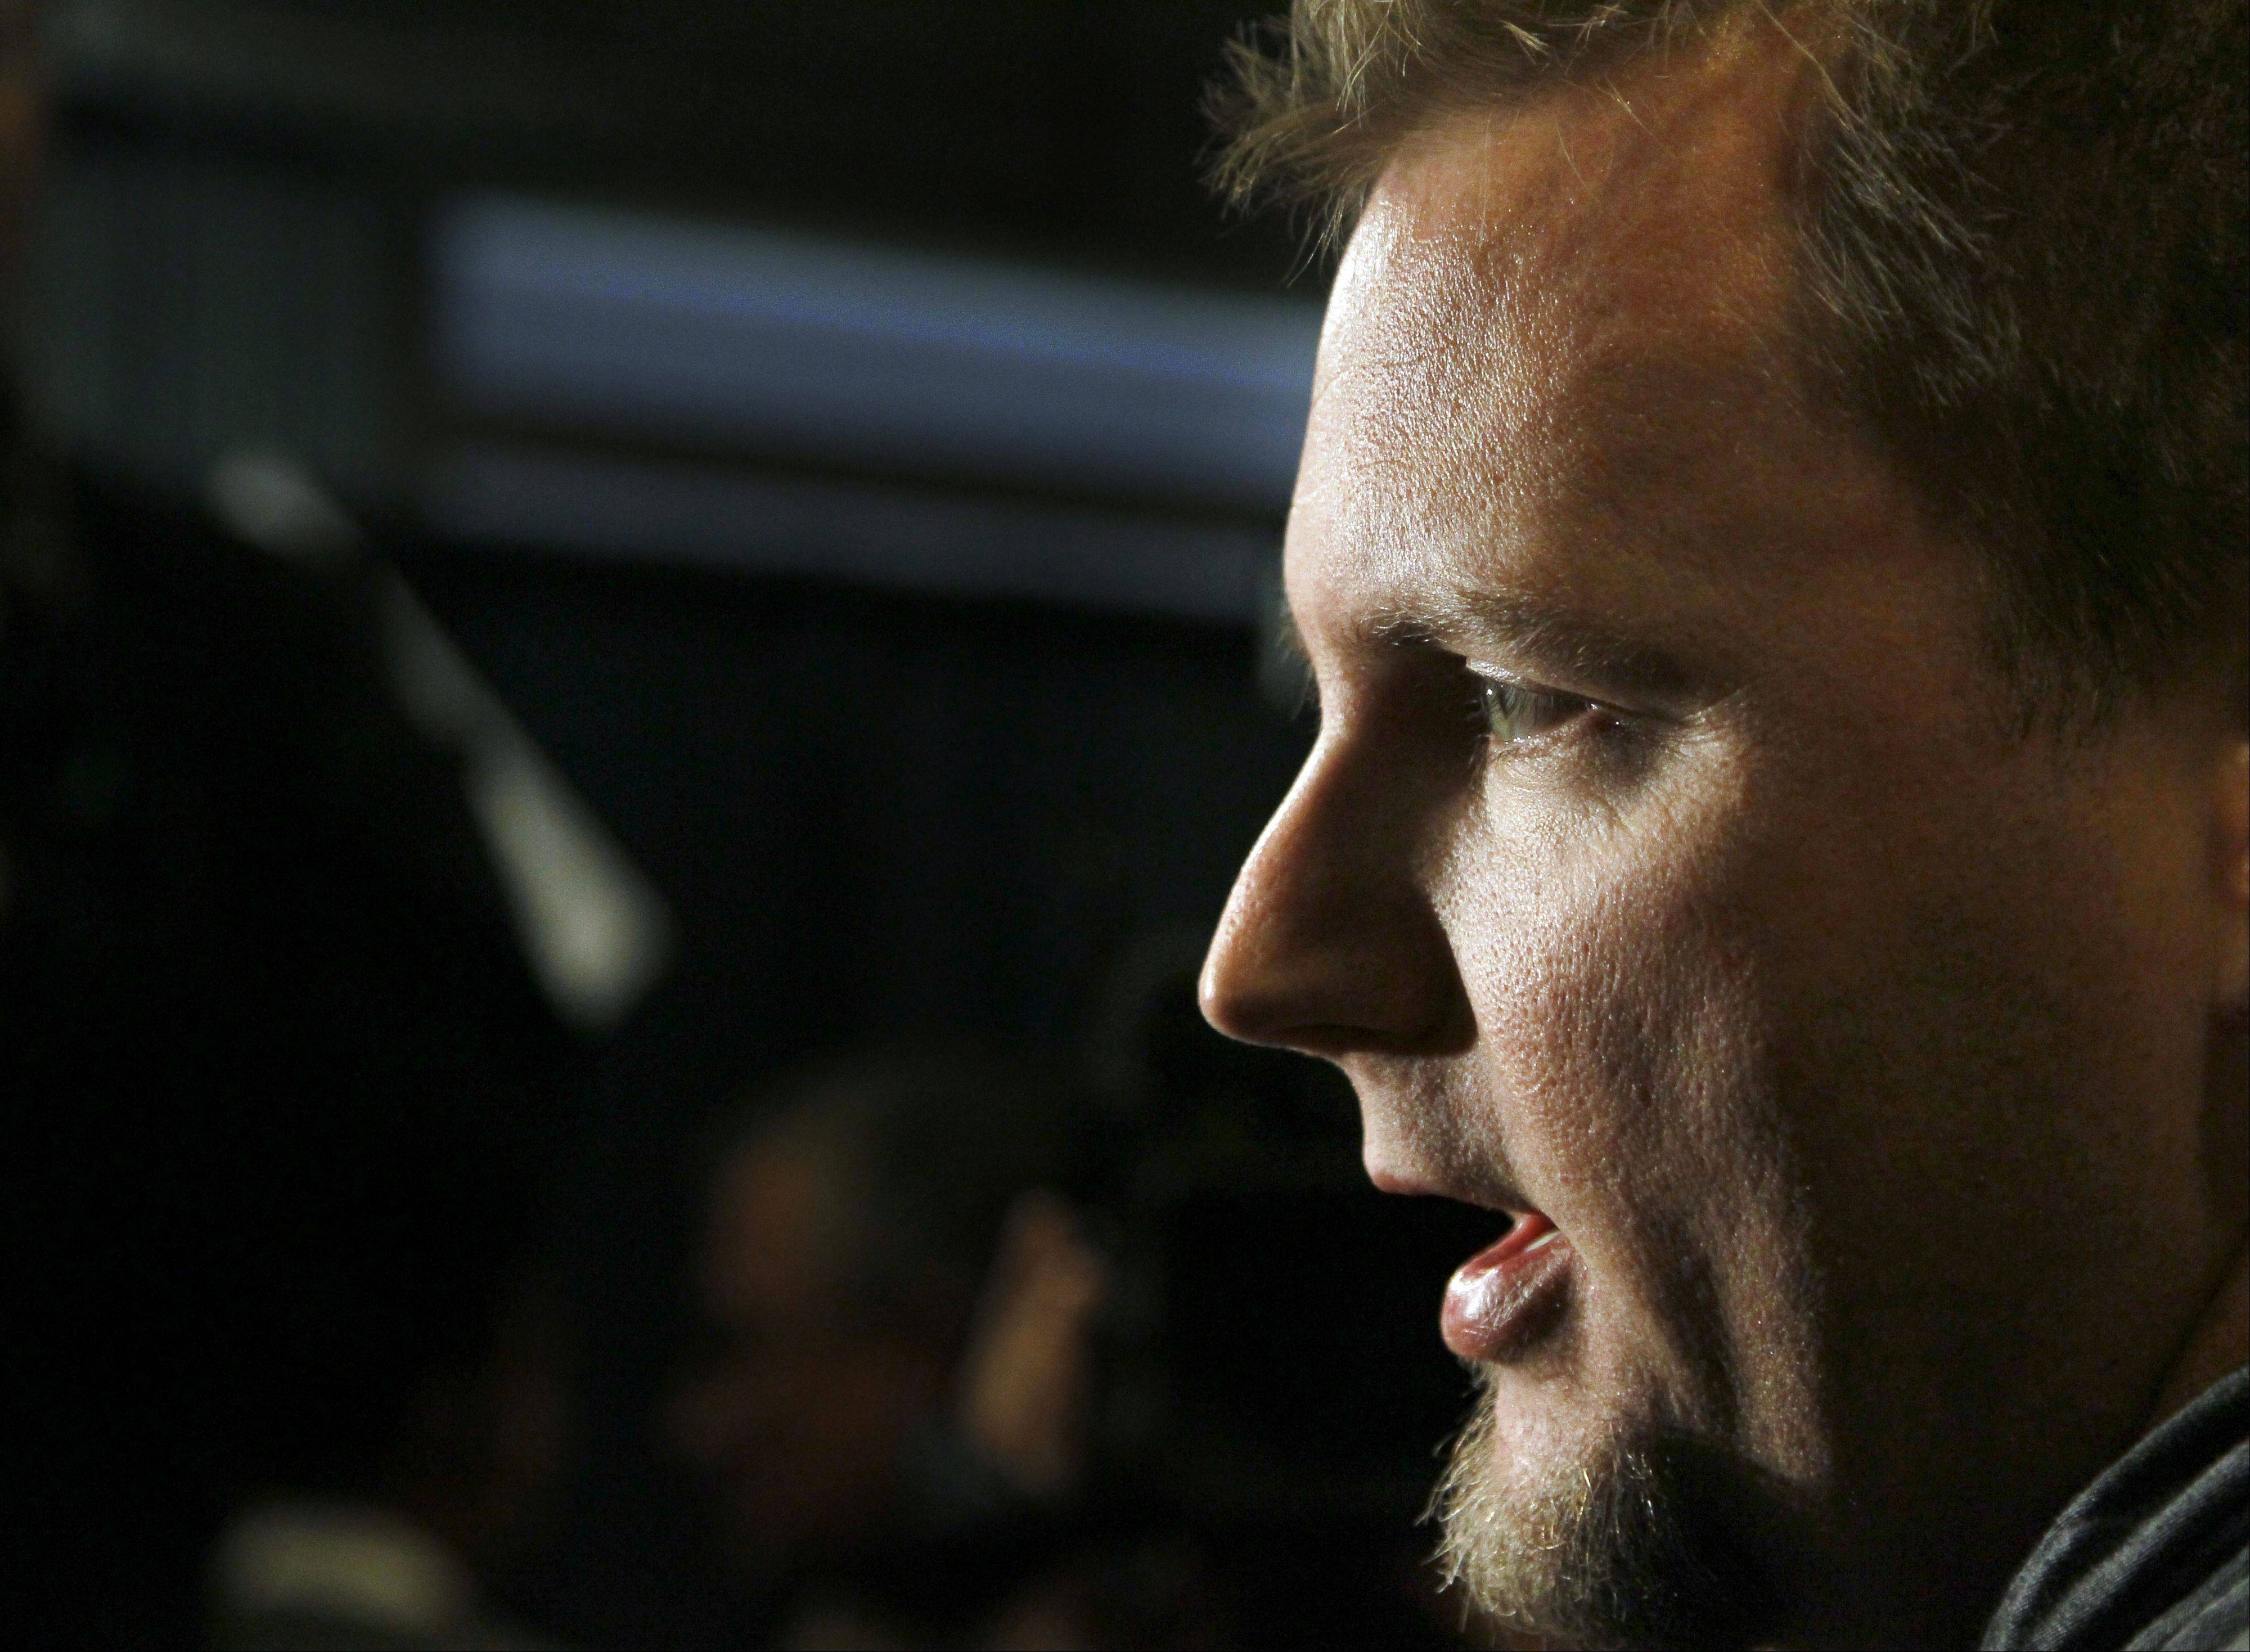 Chicago White Sox catcher A.J. Pierzynski talks with reporters during the White Sox Fan Fest.